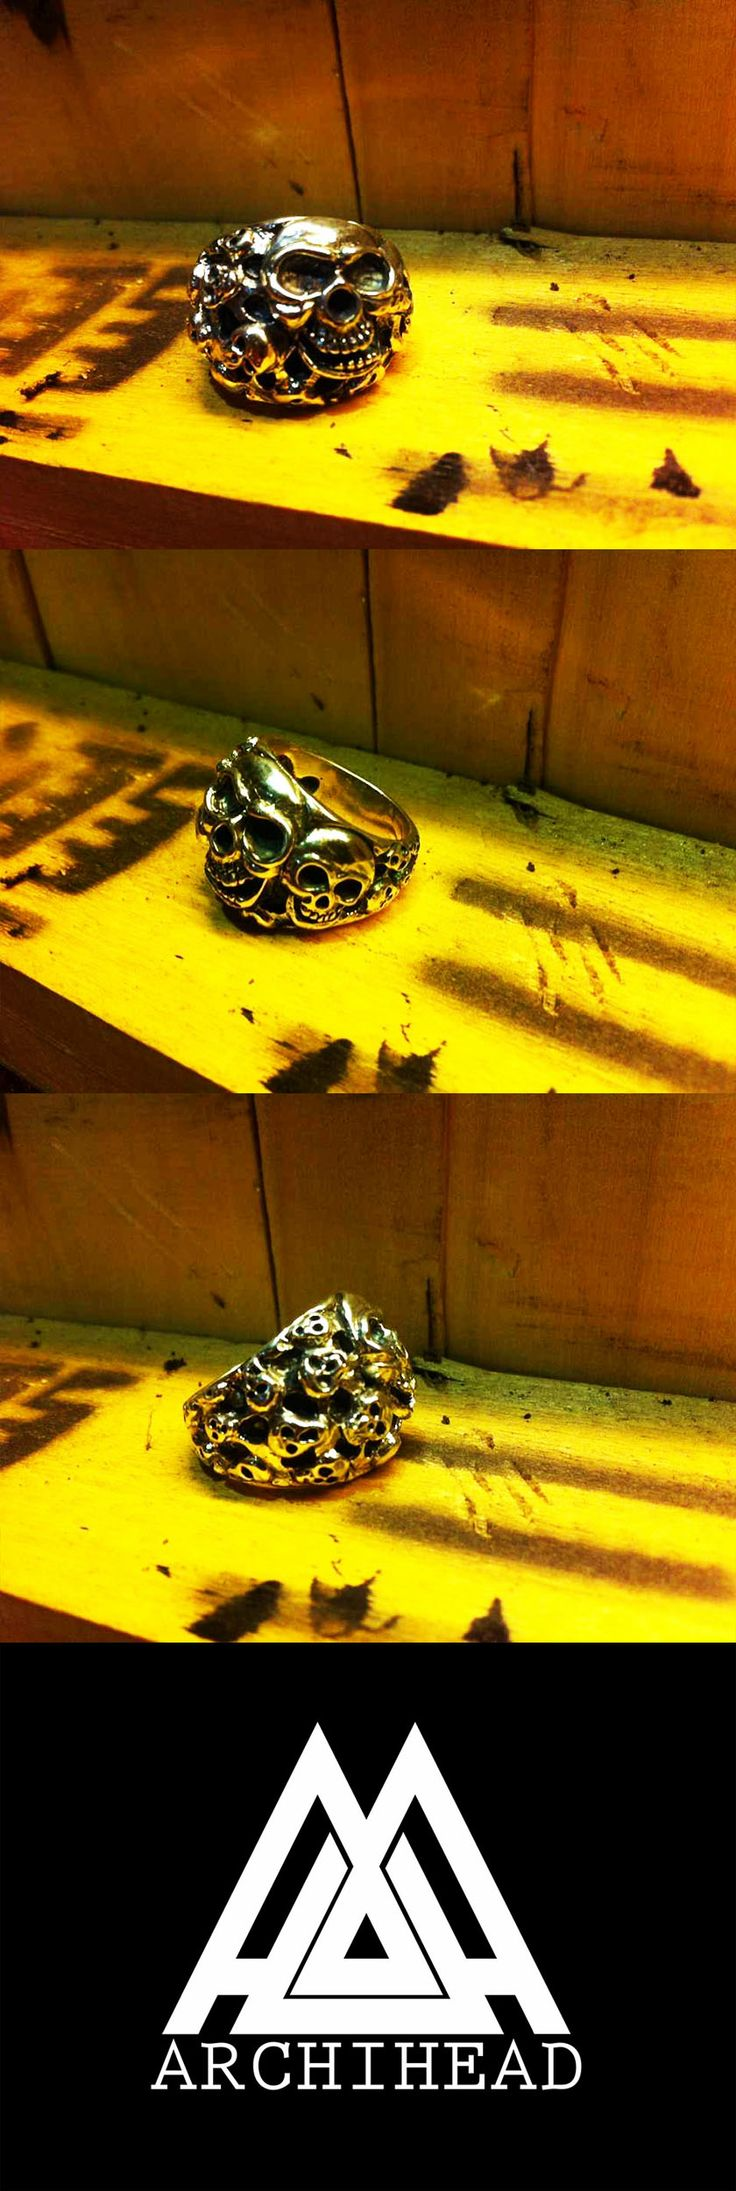 ARCHIHEAD Rings (7 skull ) Archiheadproject@gmail.com